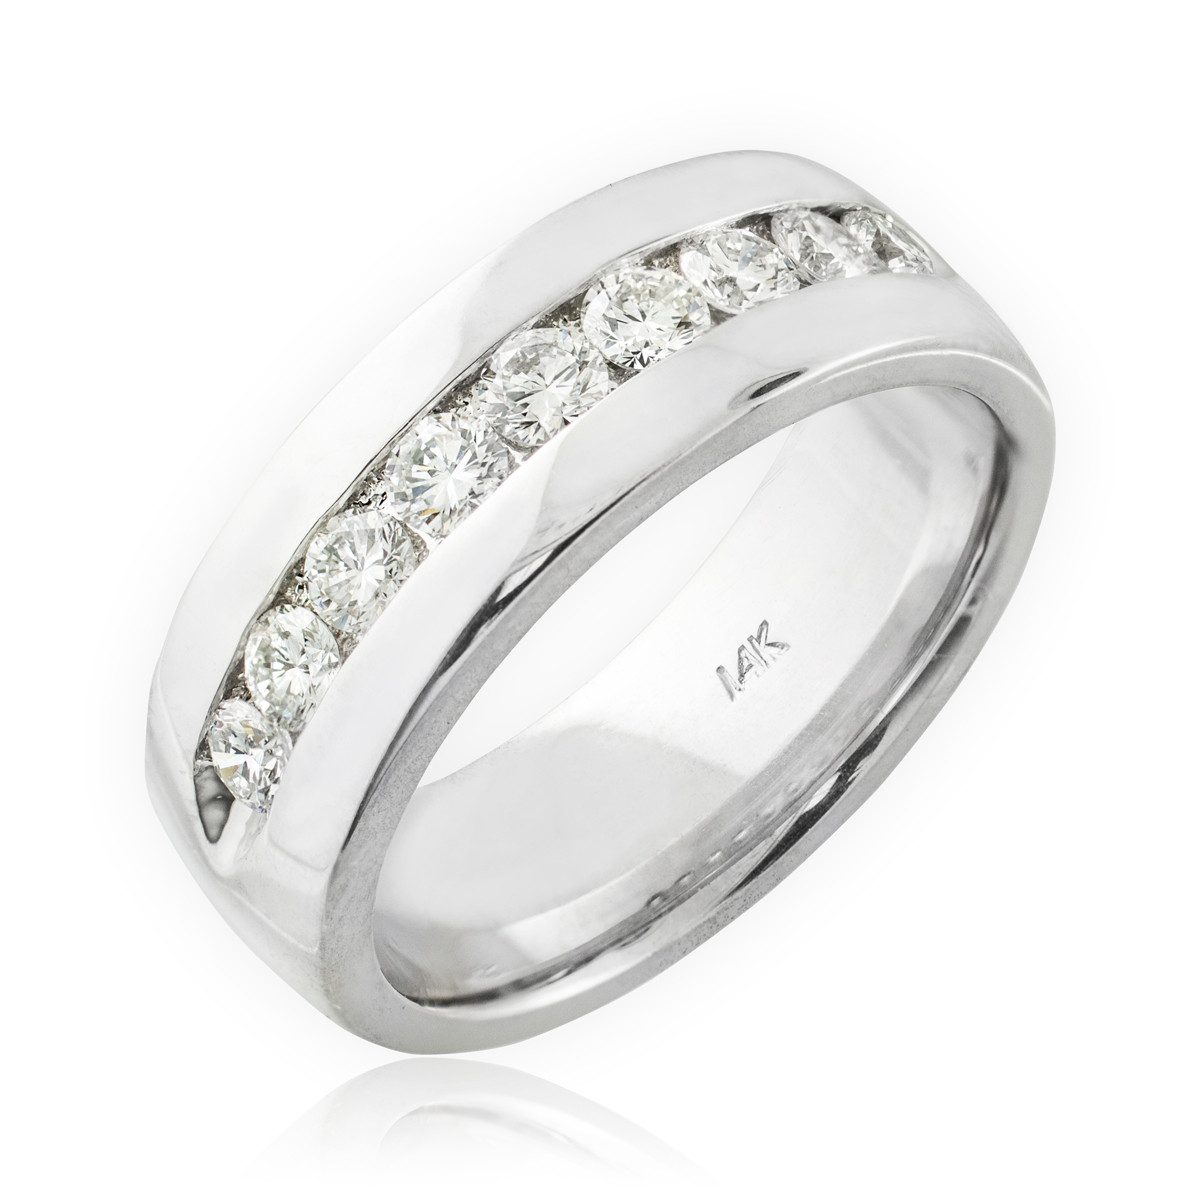 White gold men's diamond wedding band